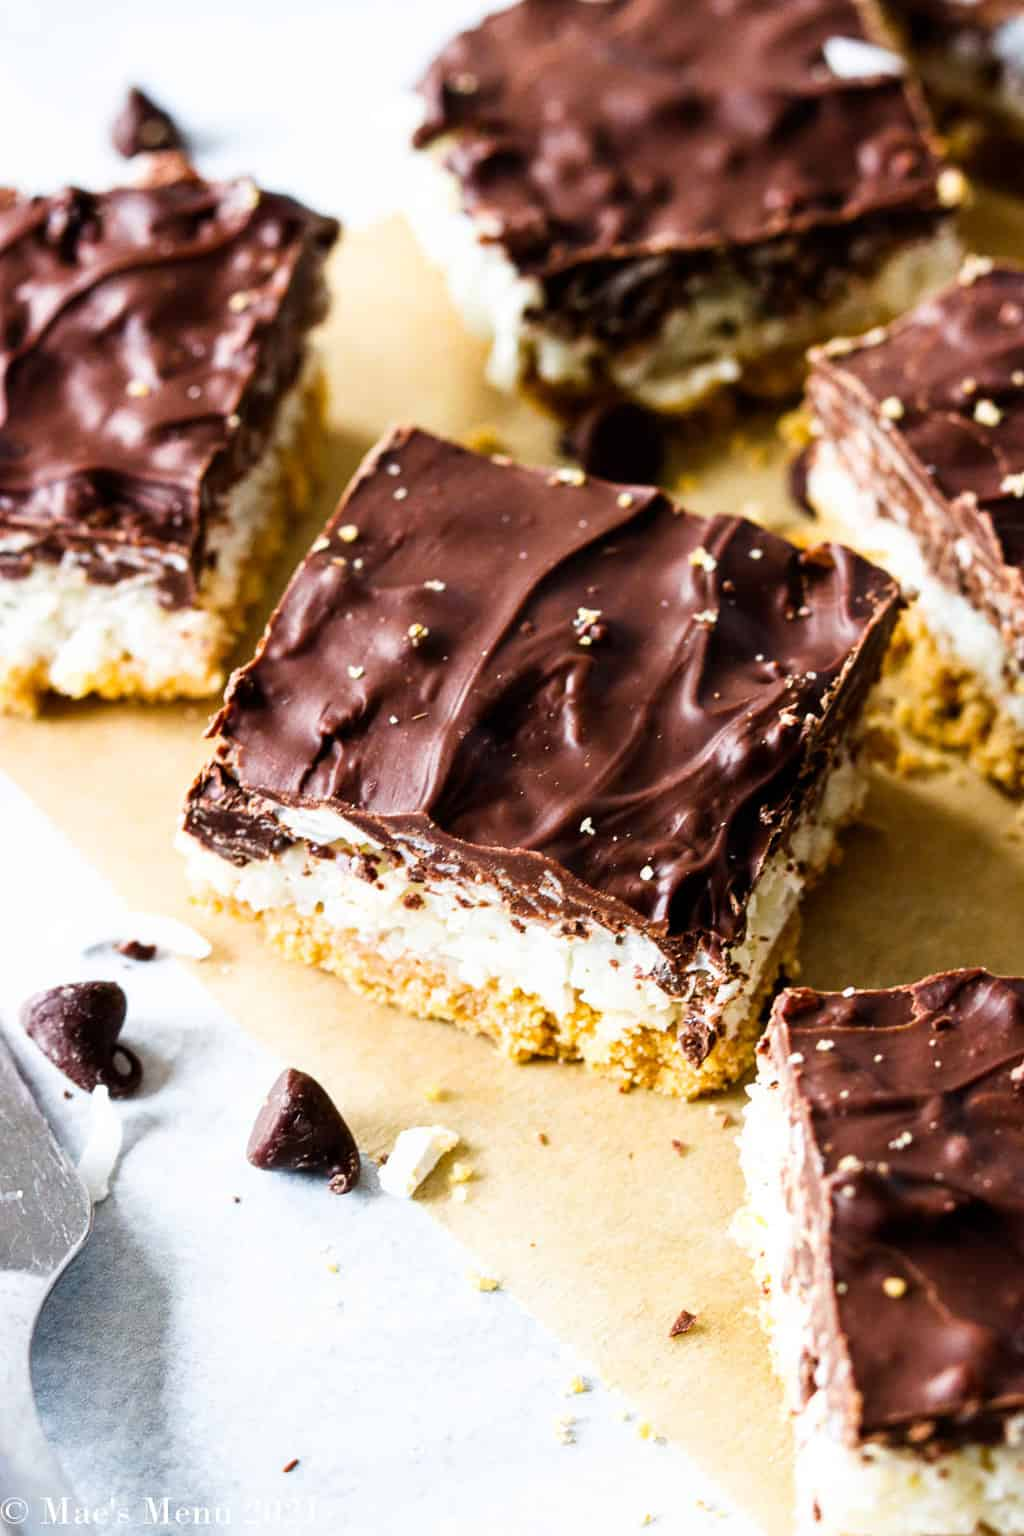 An up-close shot of a chocolate coconut bar on a counter